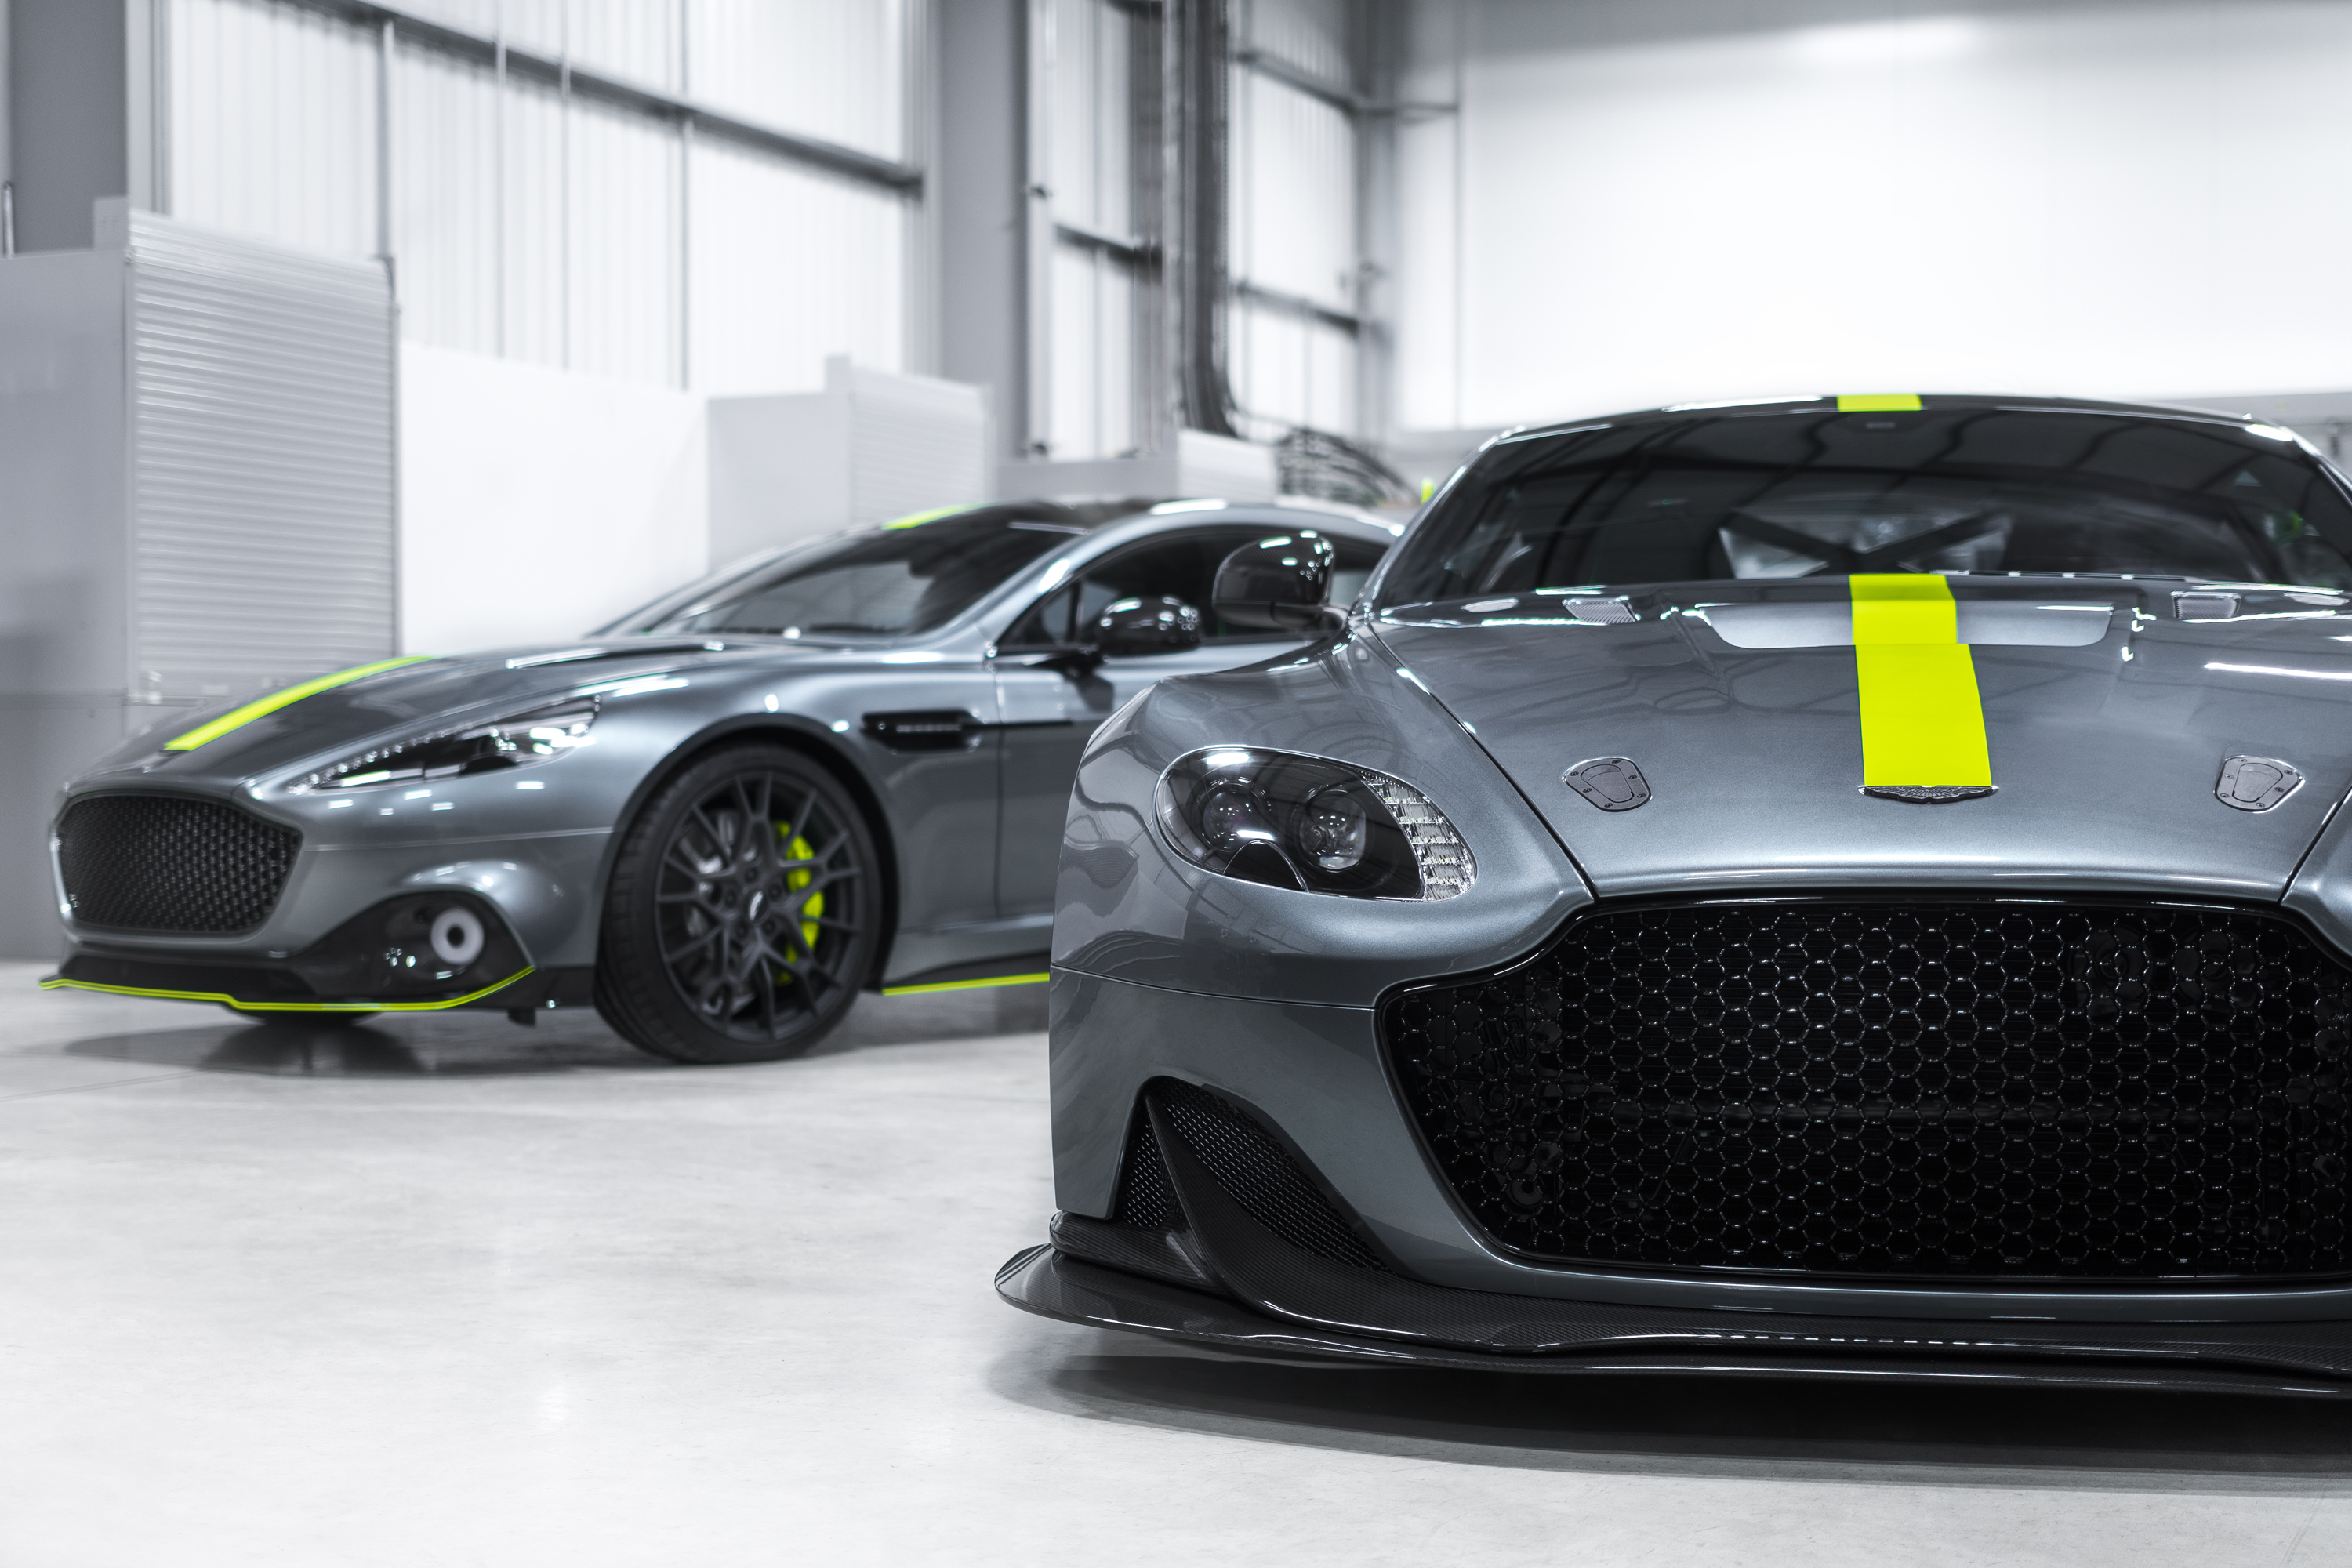 Aston Martin is launching a new AMR brand that will bring motorsports performance and design into road cars.